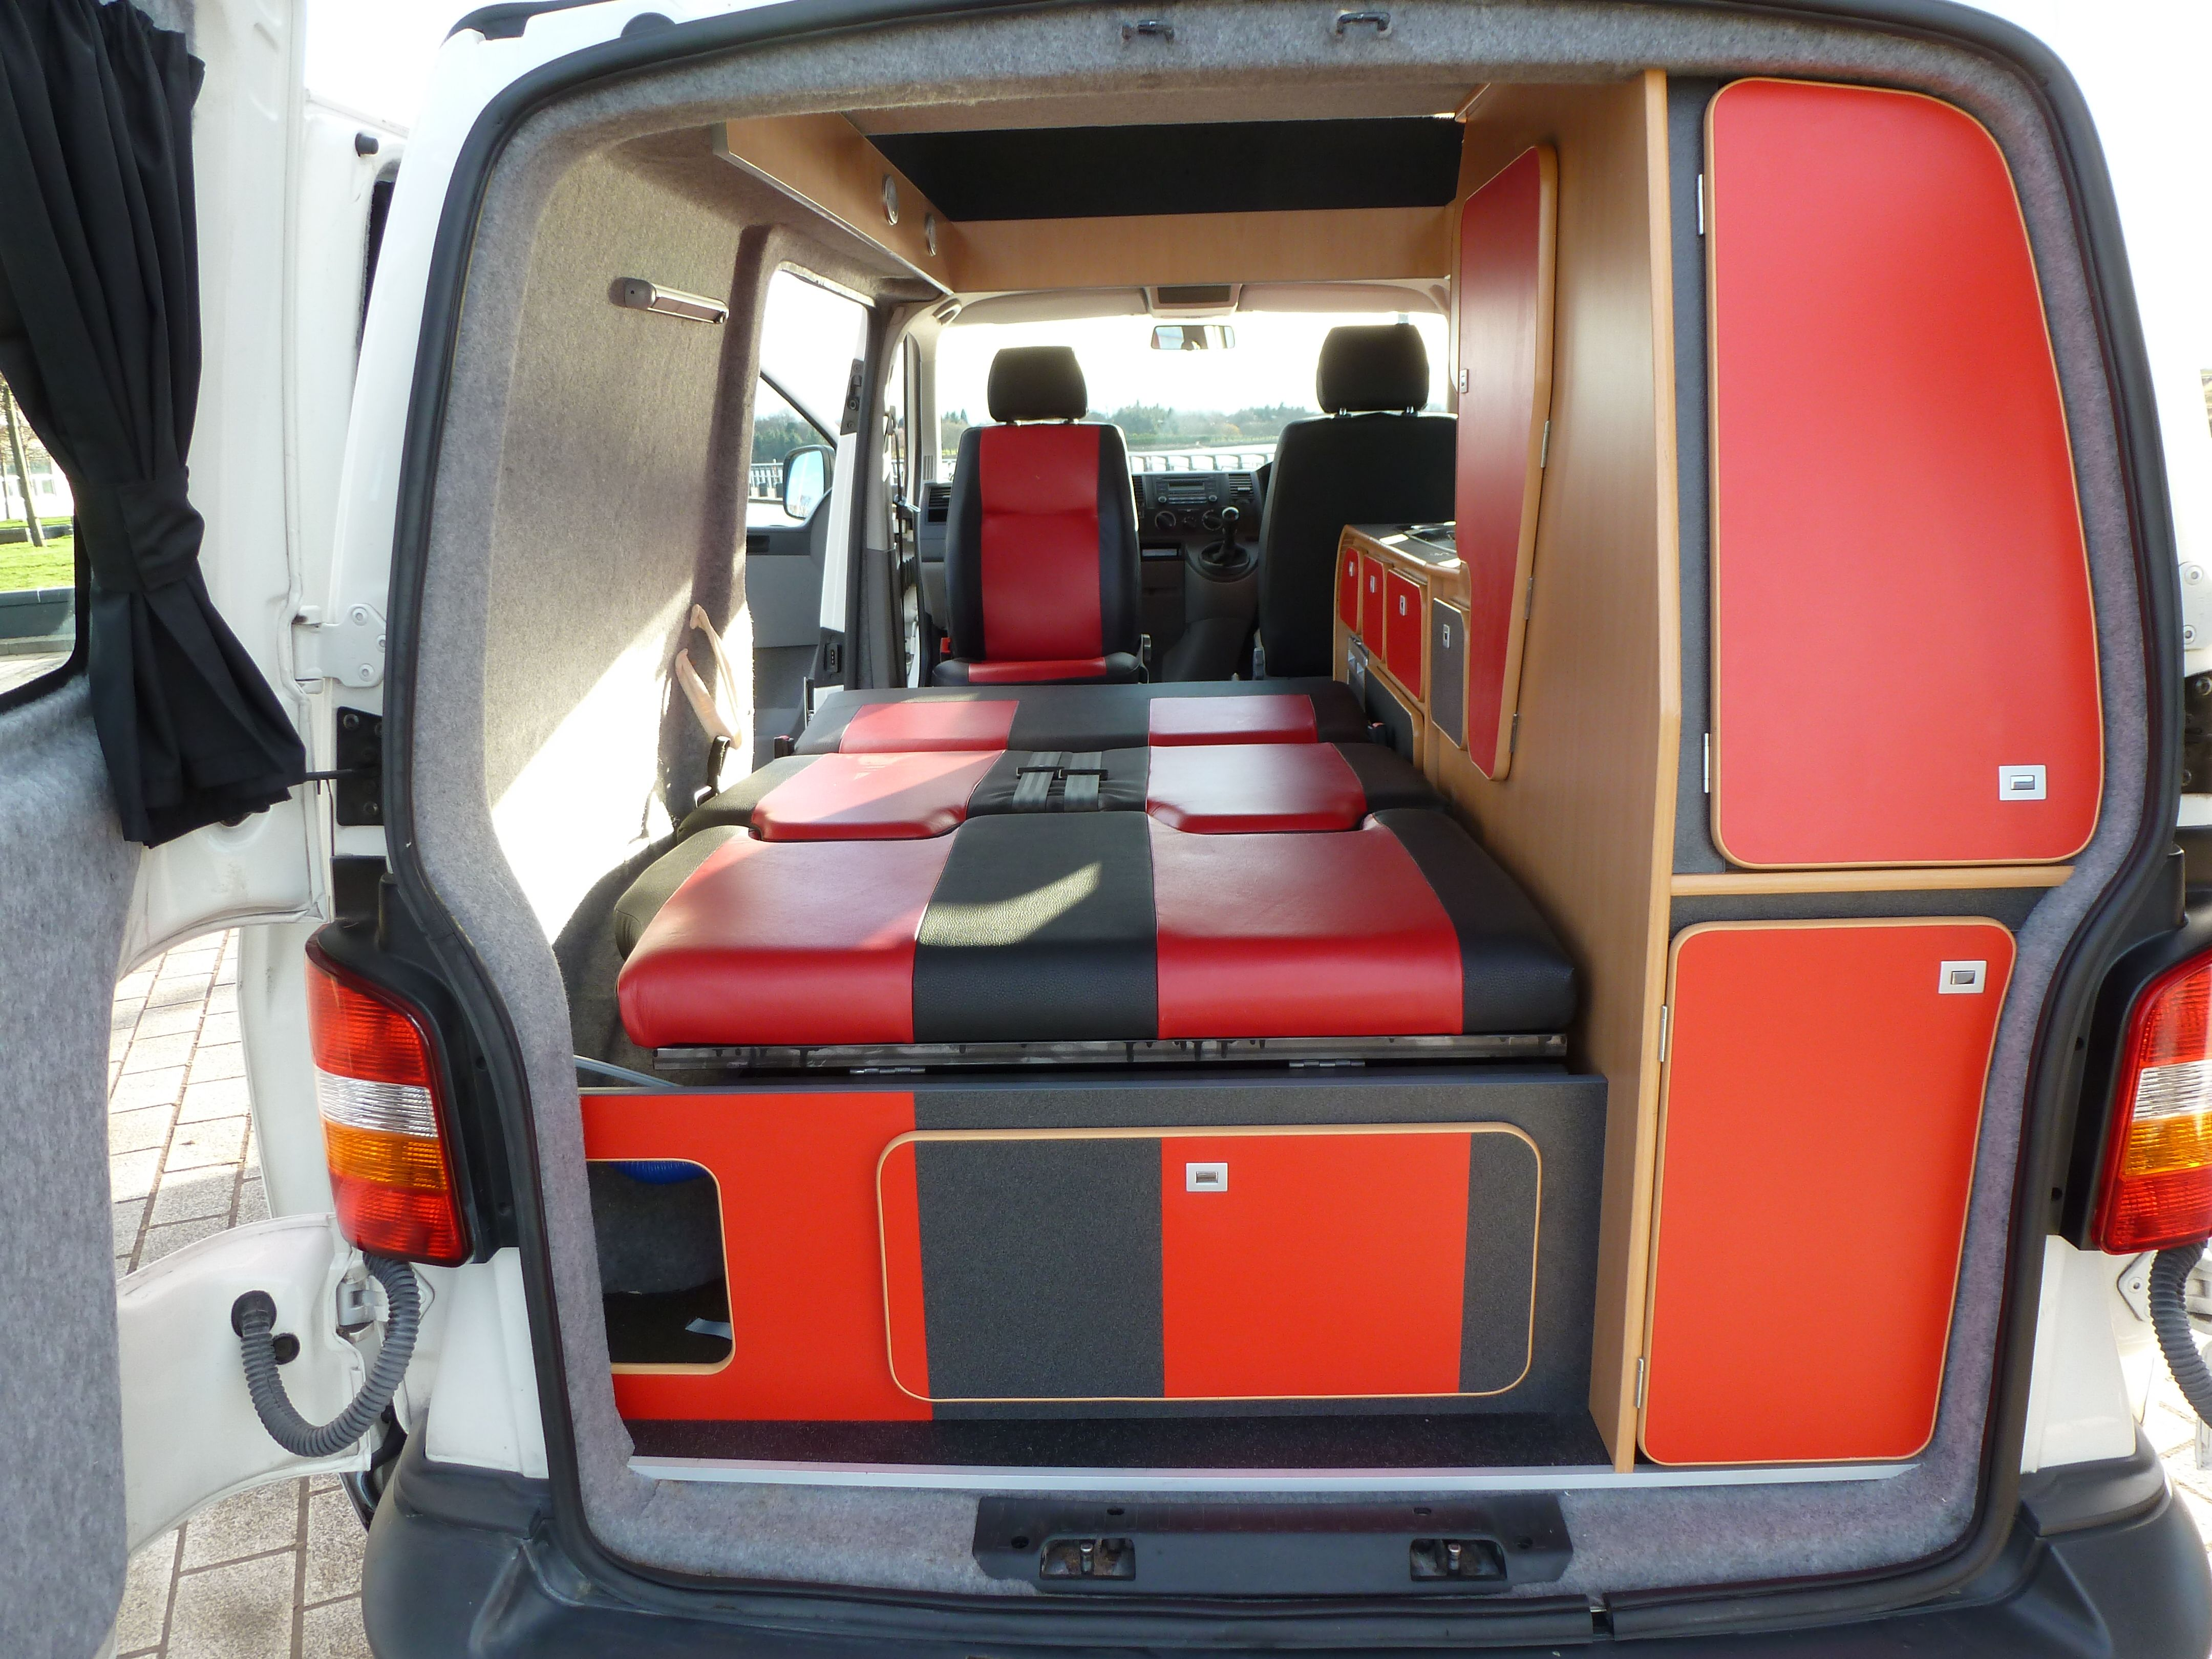 vw t5 campervan caledonian conversions 0141 952 5399. Black Bedroom Furniture Sets. Home Design Ideas